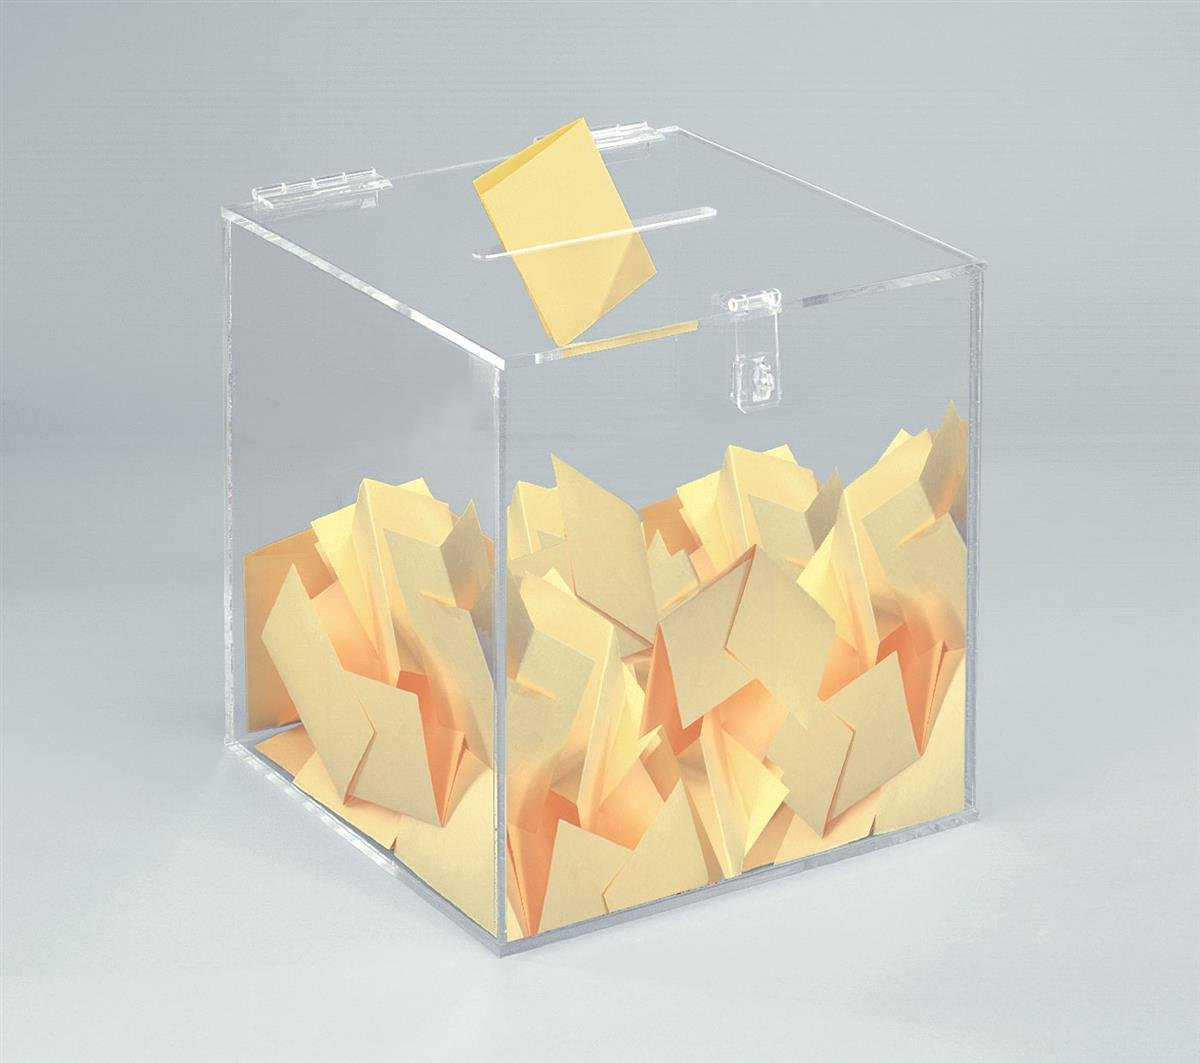 12-inch Clear Acrylic Ballot Box Cube with Hinged Lid, for Countertop Use by Displays2go